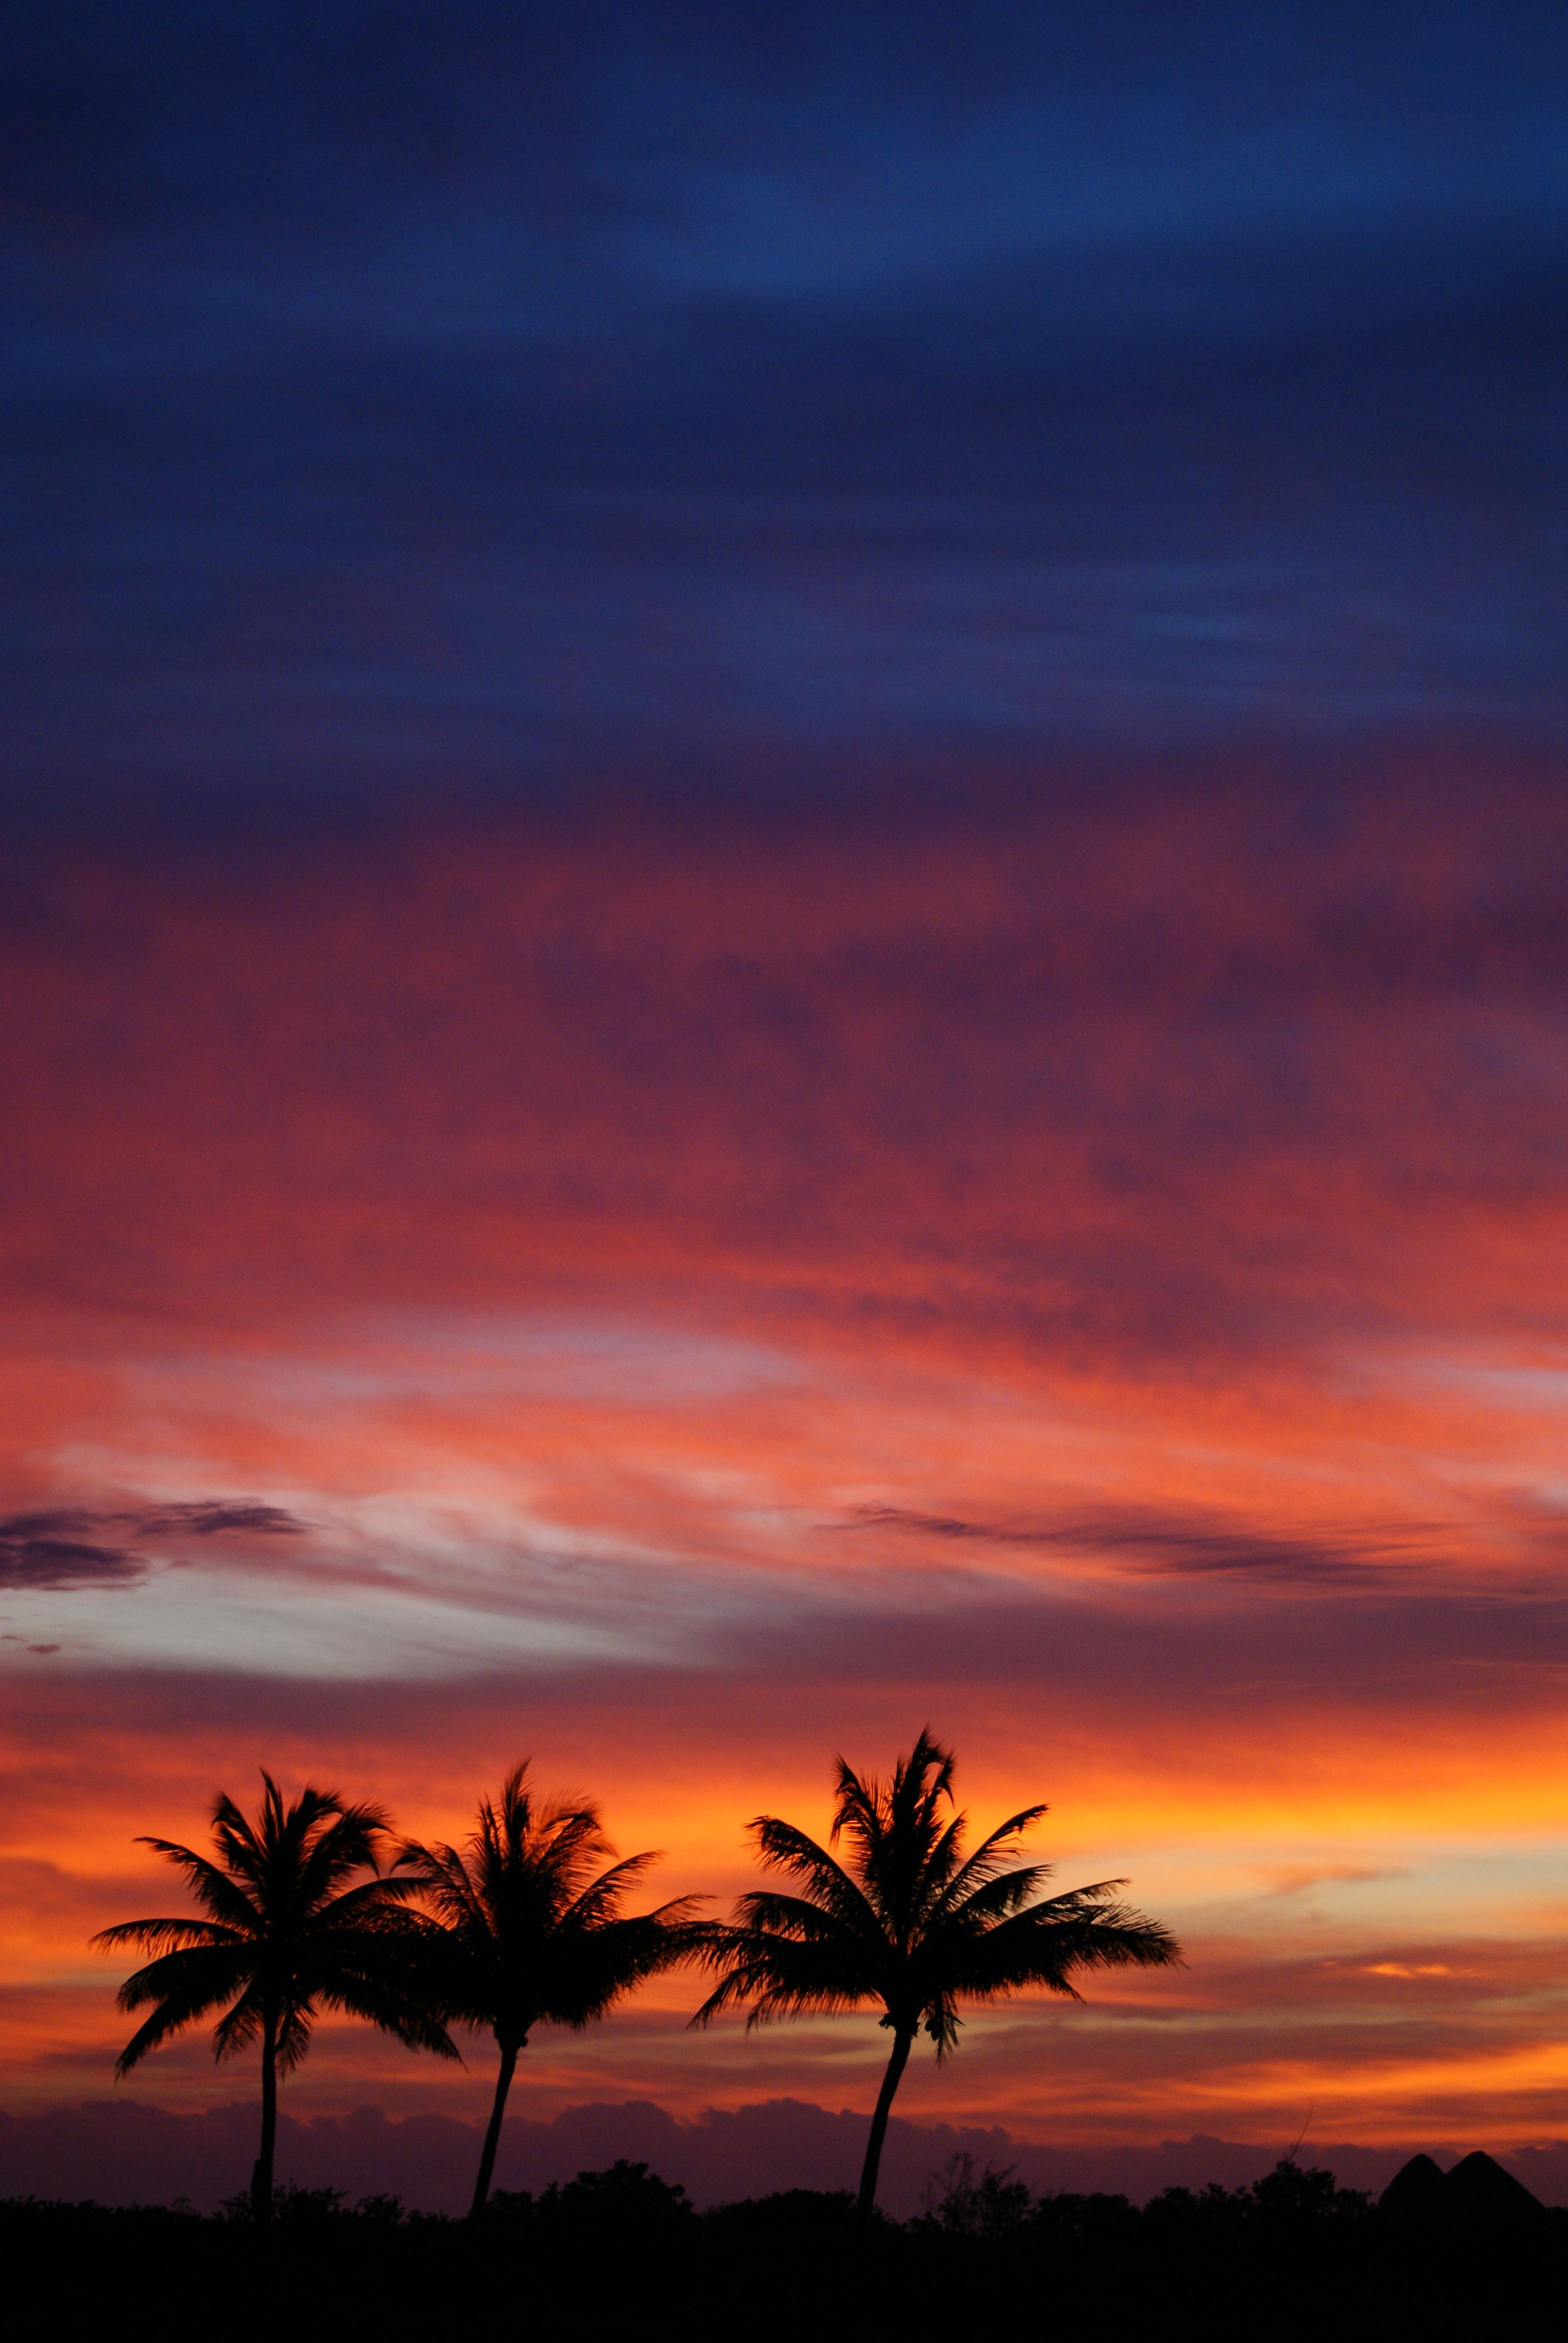 51728 download wallpaper Nature, Silhouettes, Sunset, Sky, Clouds, Tropics, Palms screensavers and pictures for free